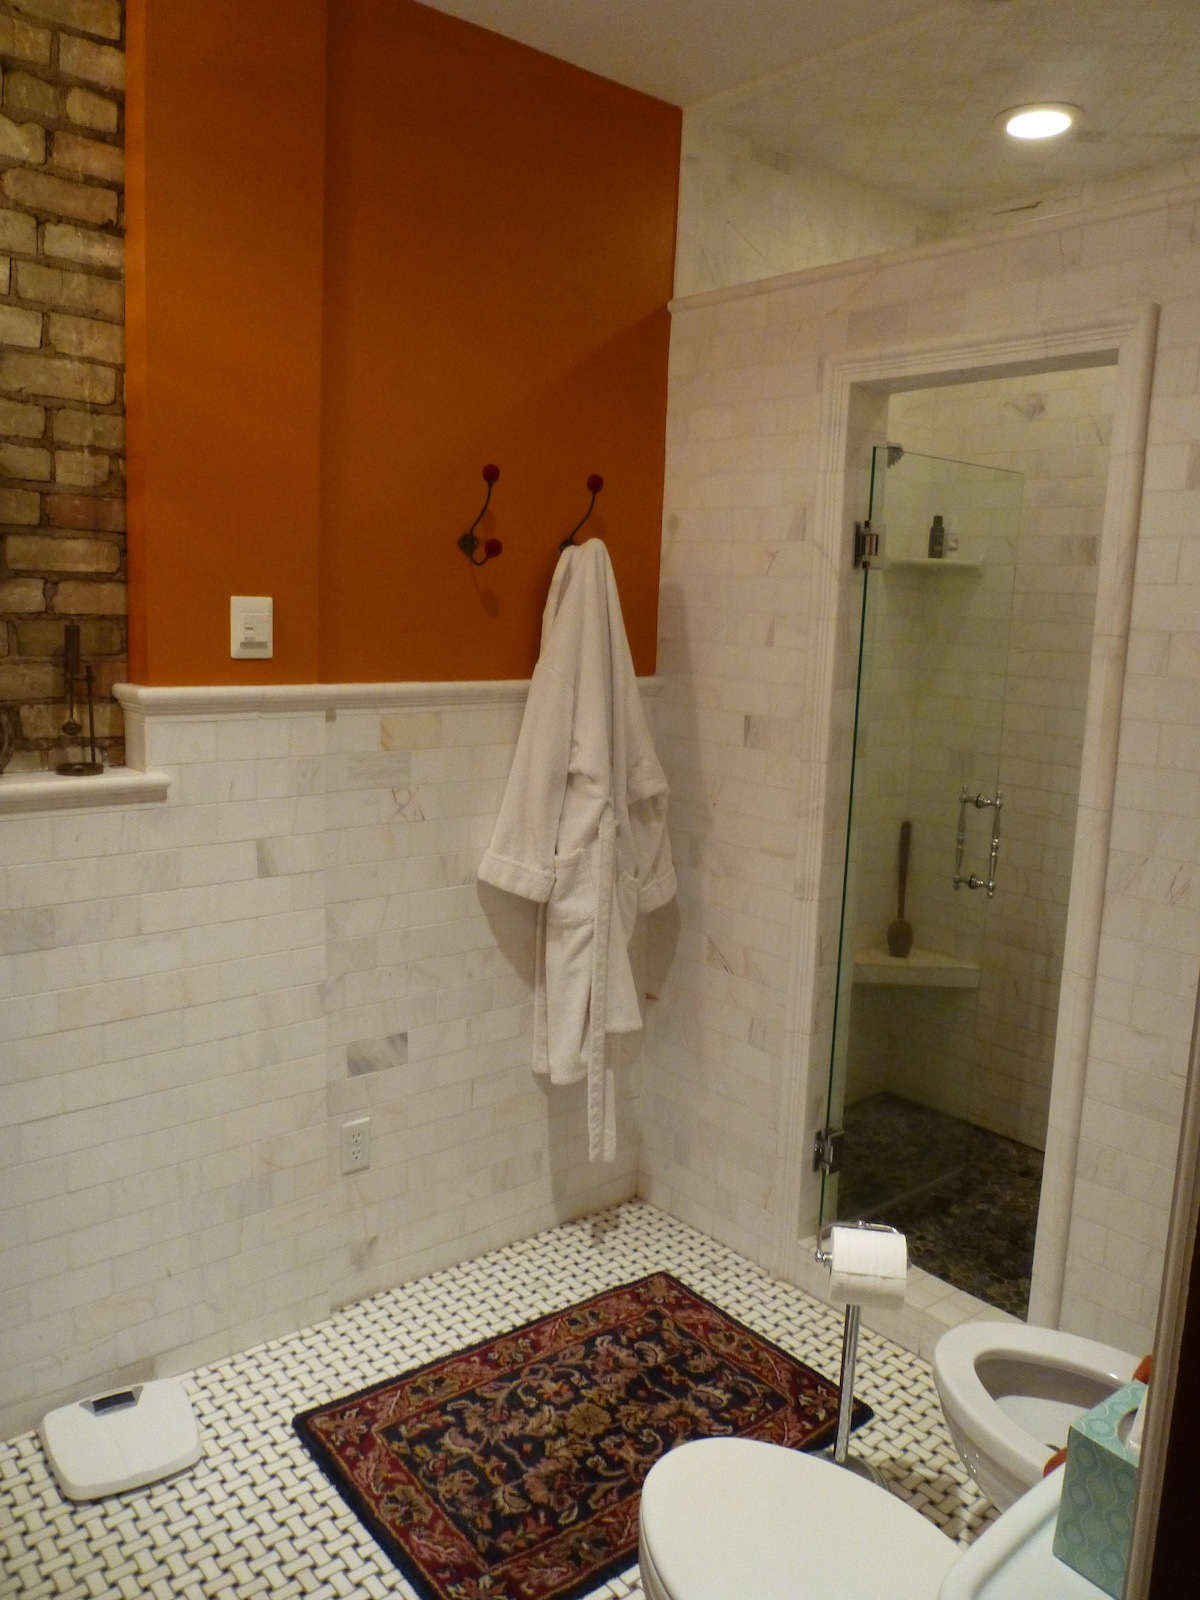 Bathroom includes double shower for two, featuring custom stone floor.